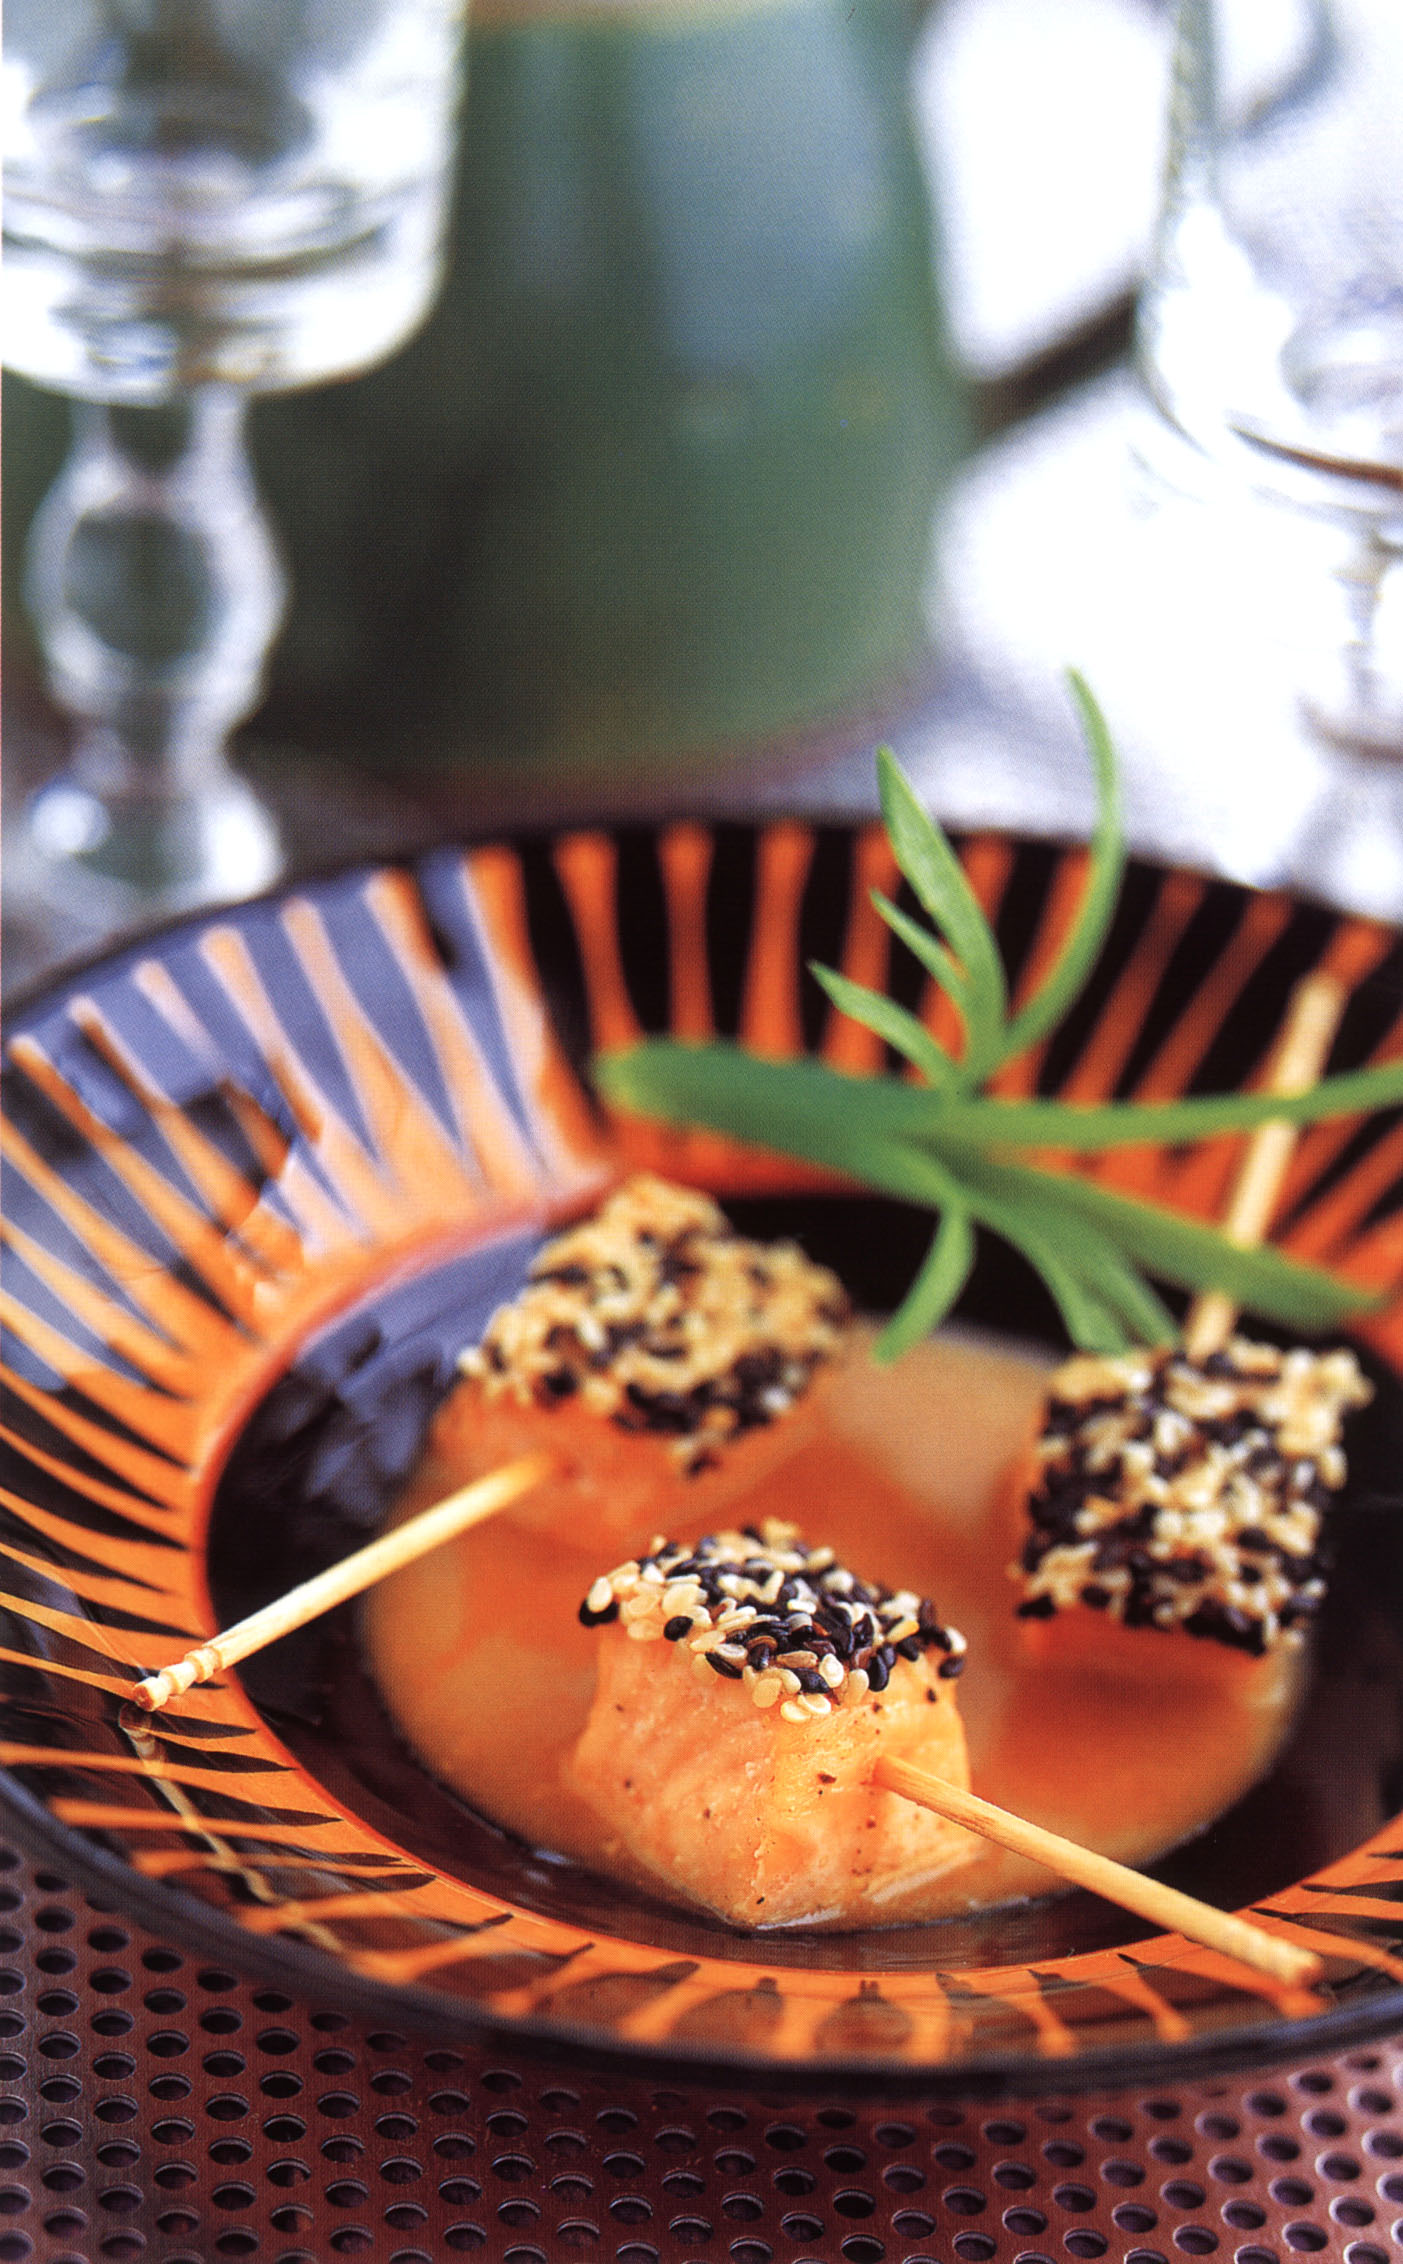 Sesame-Crusted Salmon with Pineapple-Miso Sauce